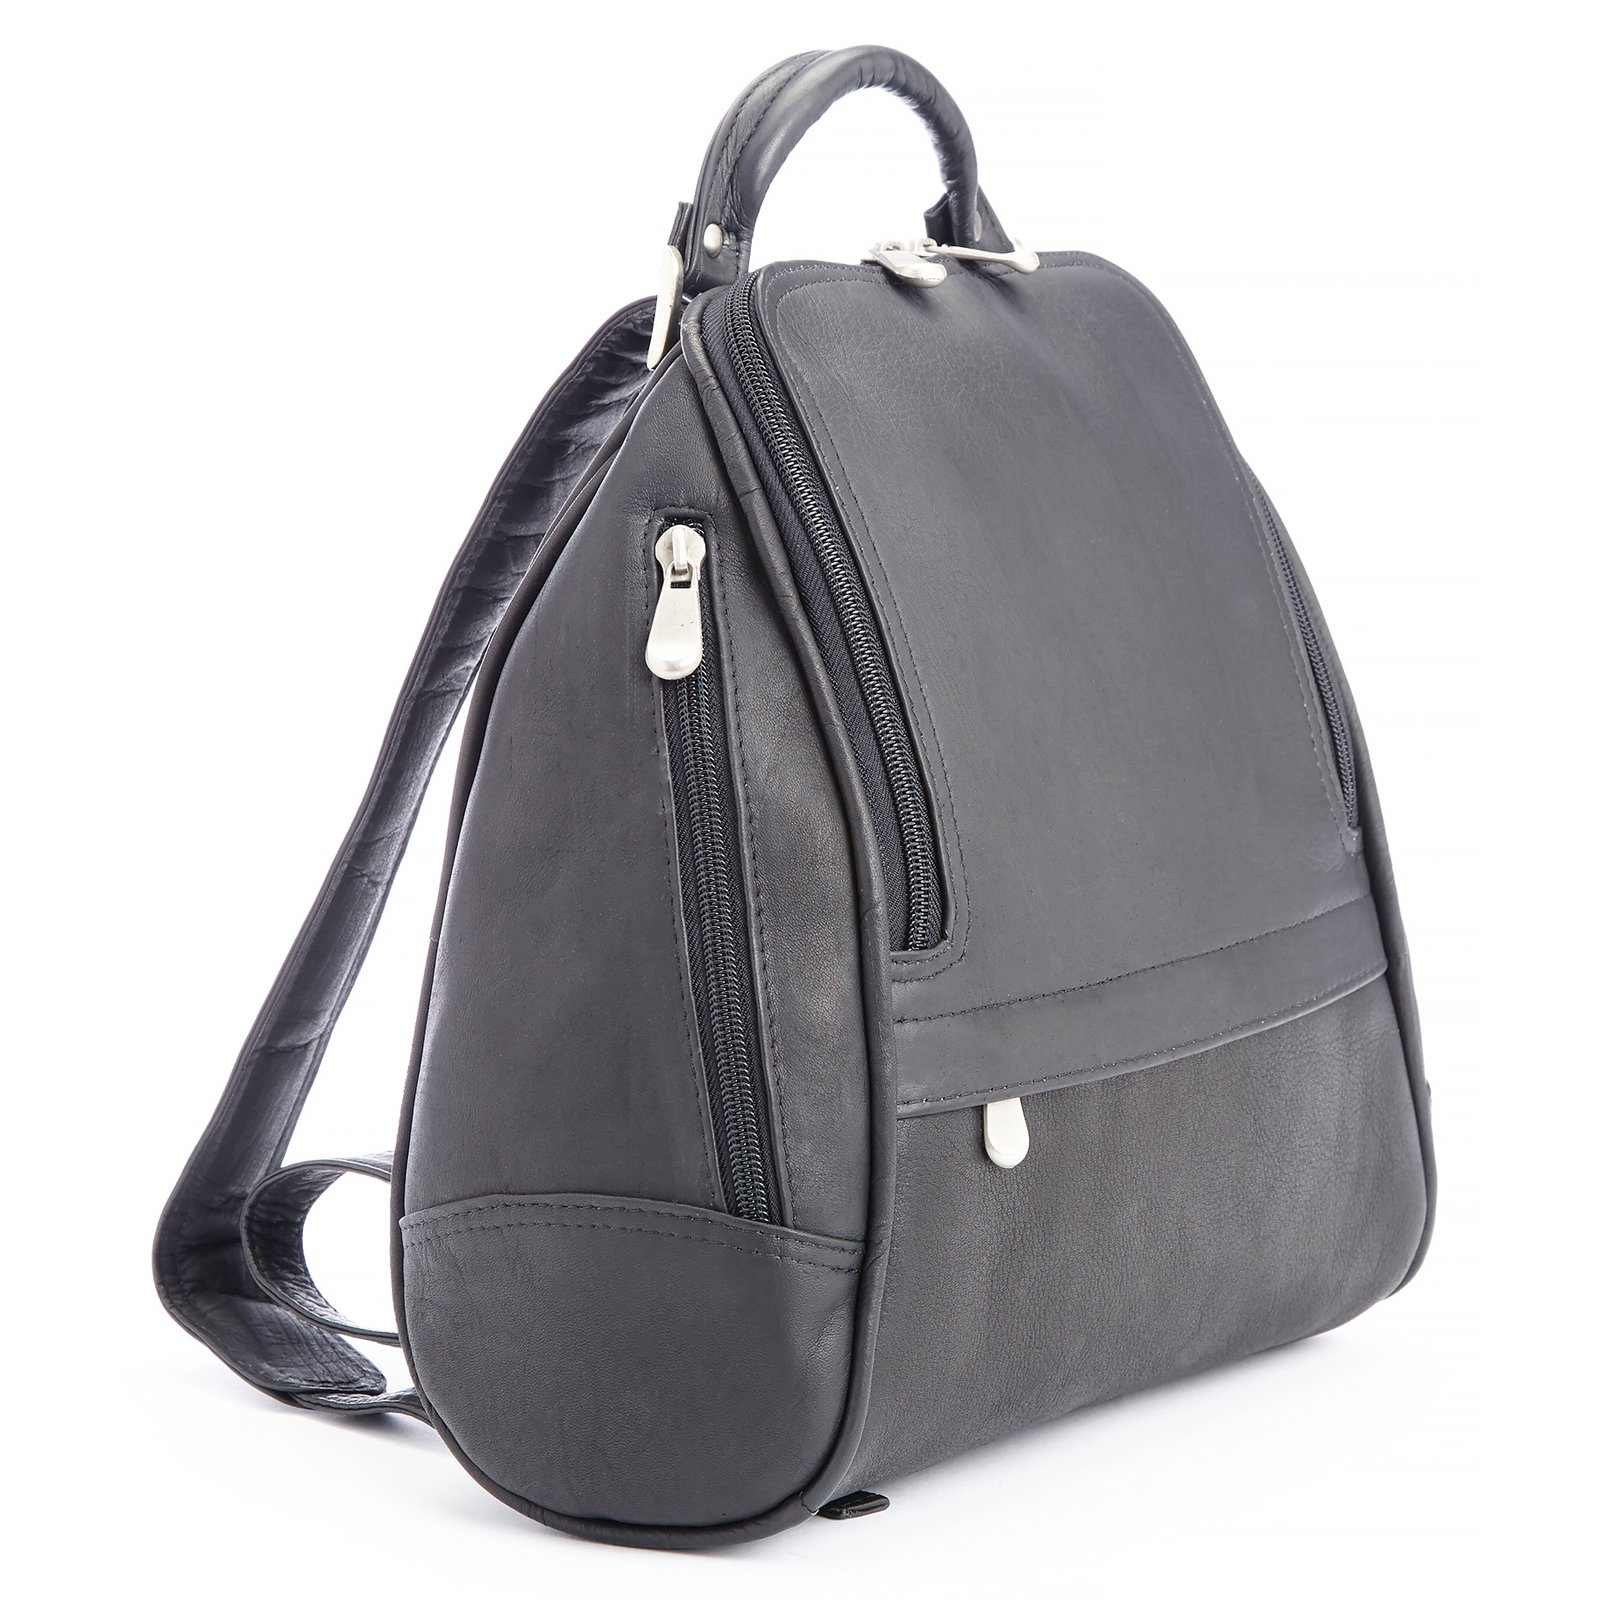 Royce Leather Colombian Genuine Leather Luxury Womens Sling Backpack